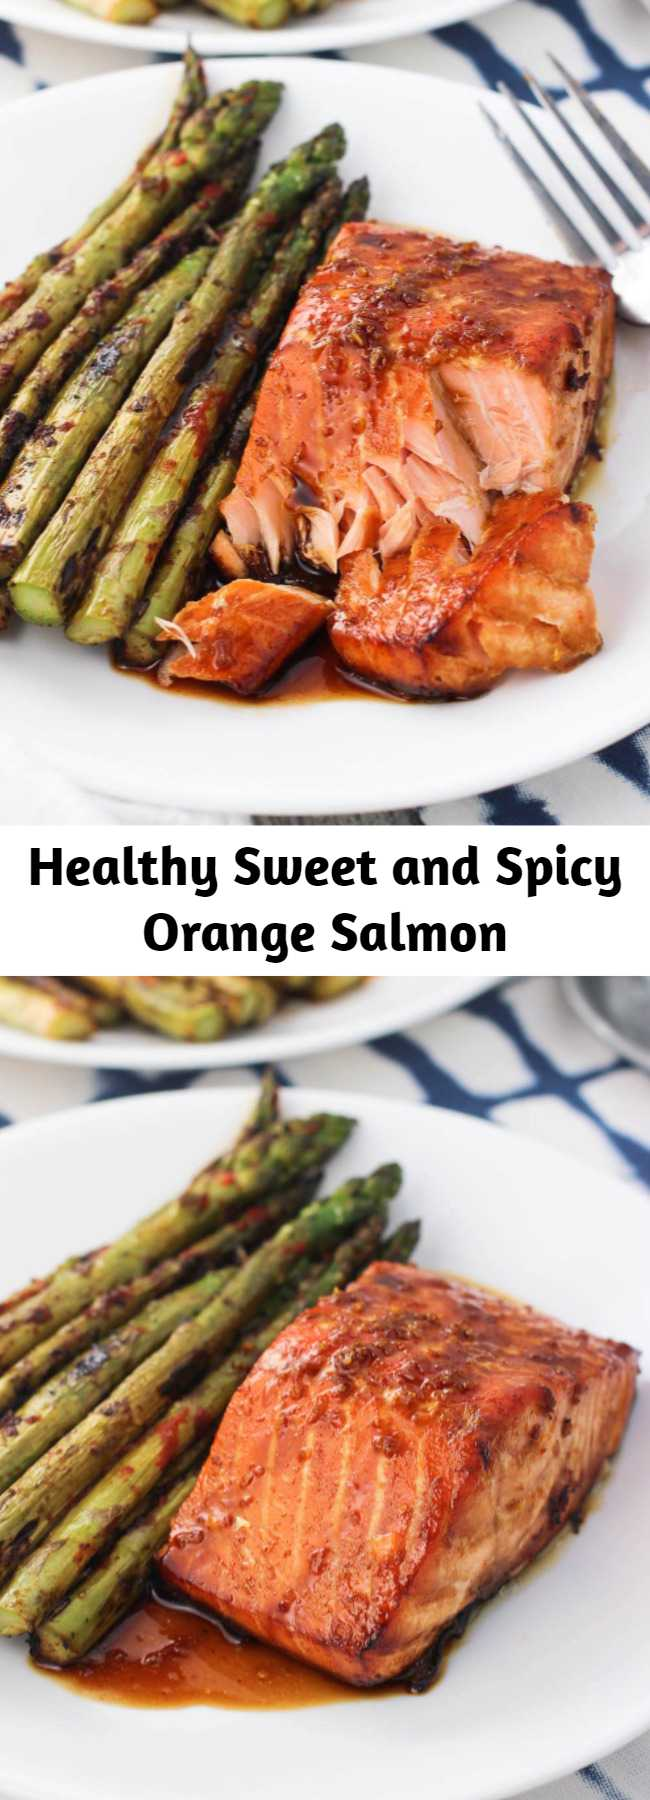 Healthy Sweet and Spicy Orange Salmon - Today I'm excited to share one of my recent favorite dinners - sweet and spicy orange salmon. It's a healthy dinner idea that is quick and easy.